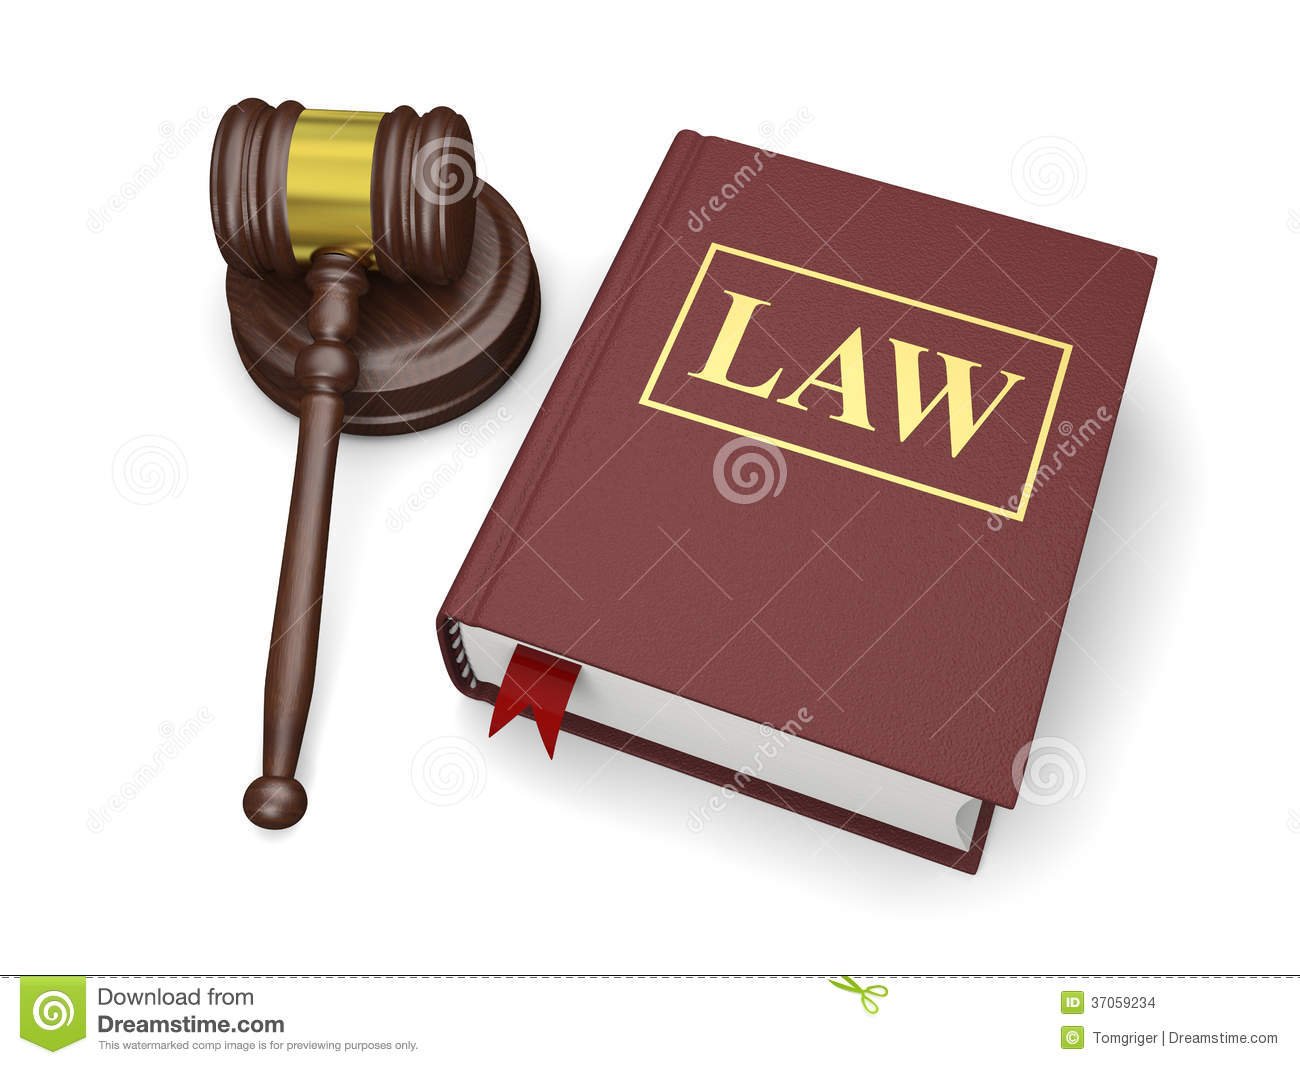 law book clipart - photo #18